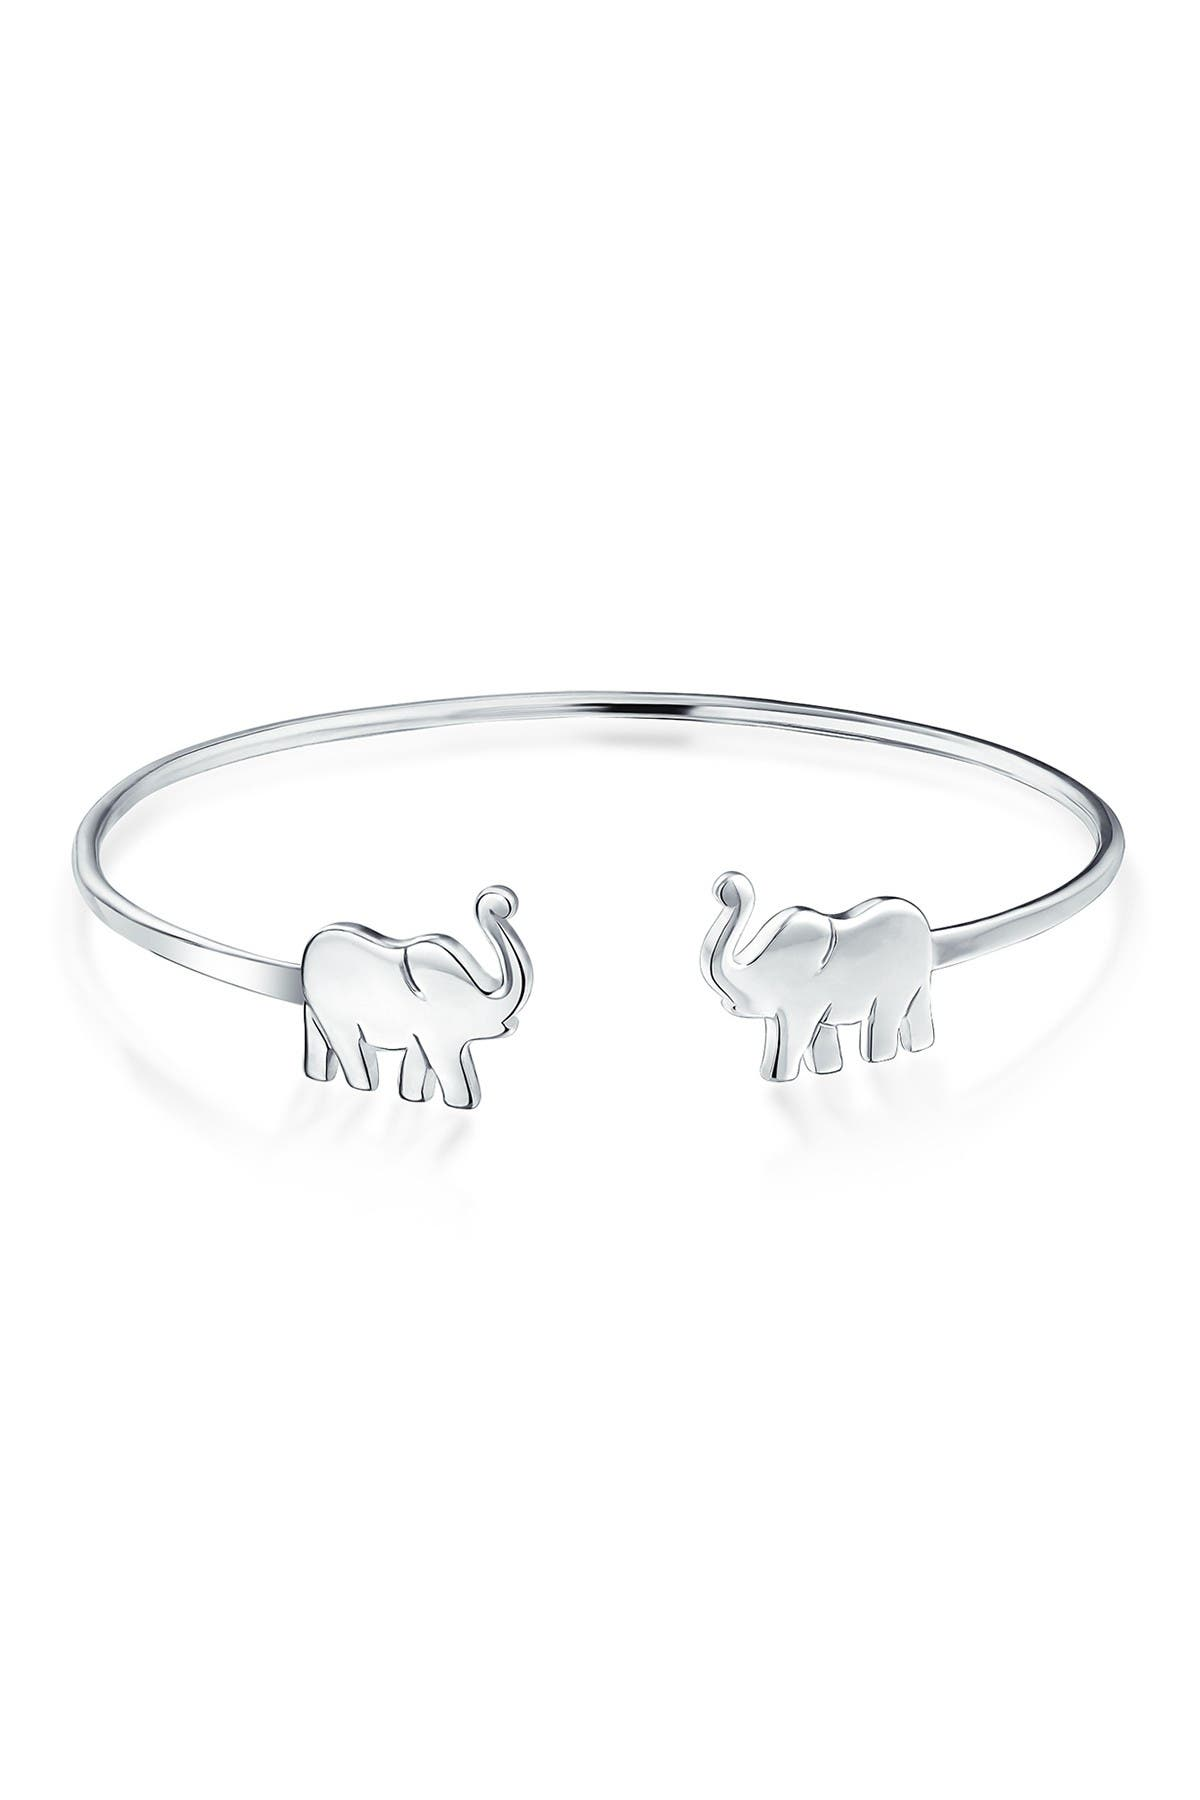 Image of Bling Jewelry Sterling Silver Lucky Elephant Duo Open Cuff